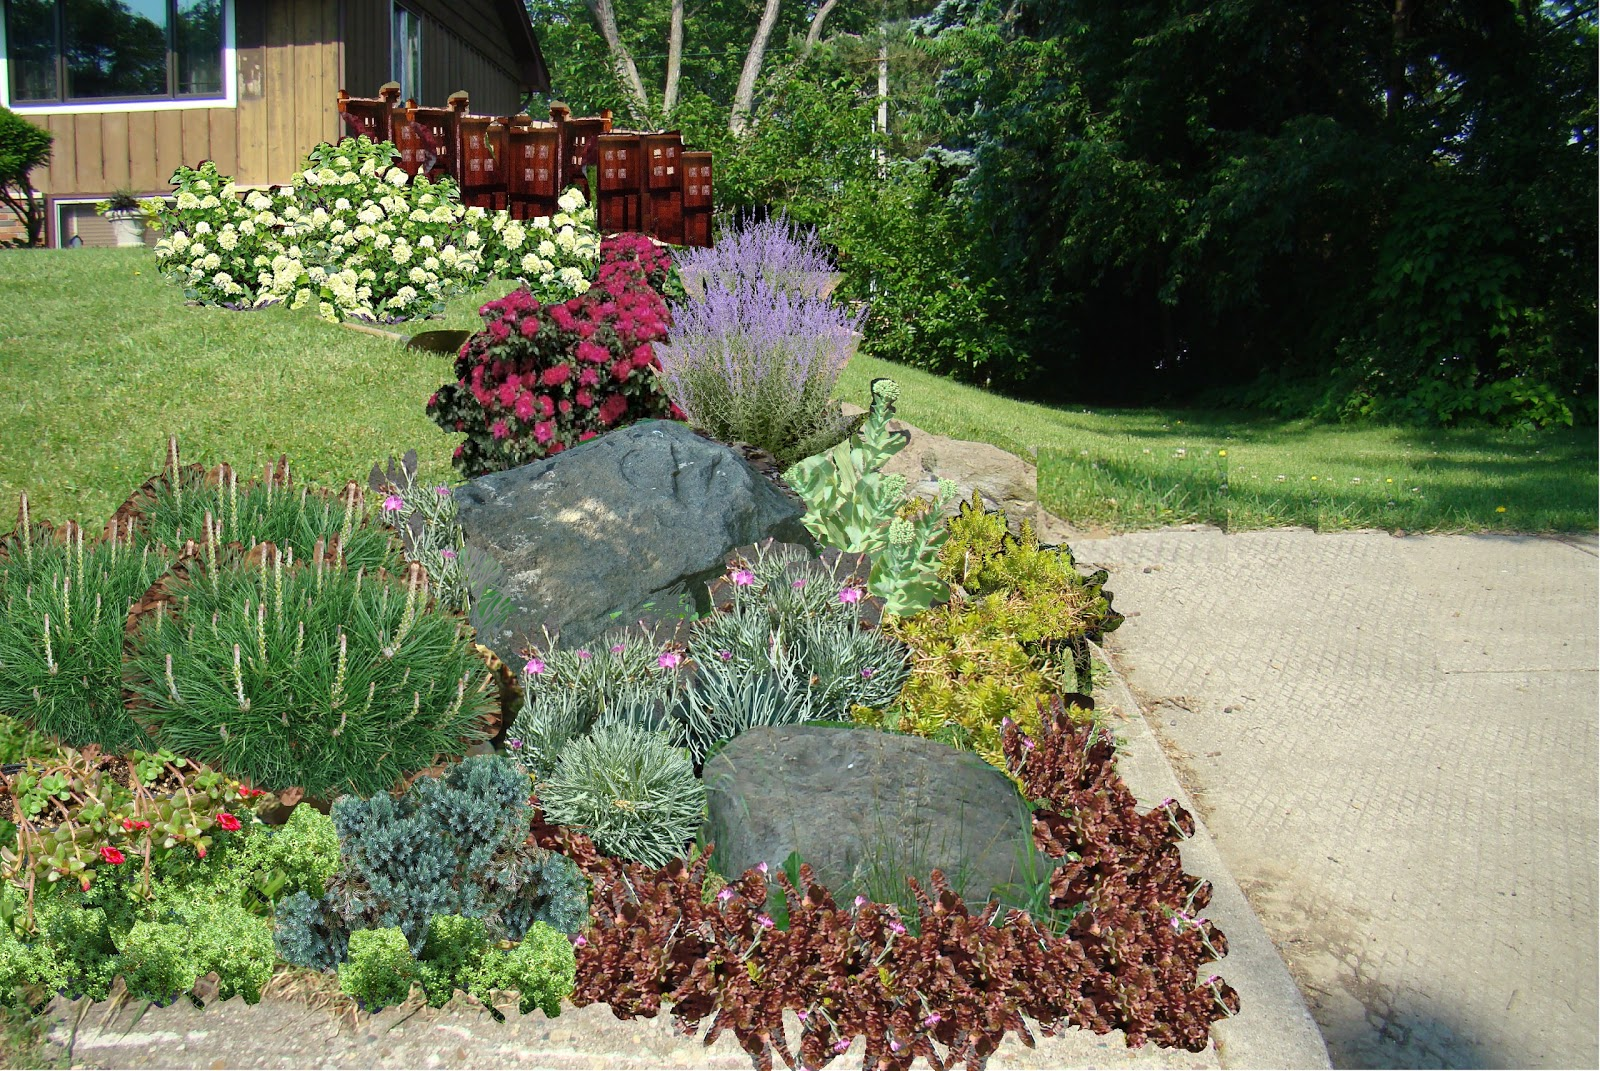 Landscaping Ideas For My Front Yard Nice Plan